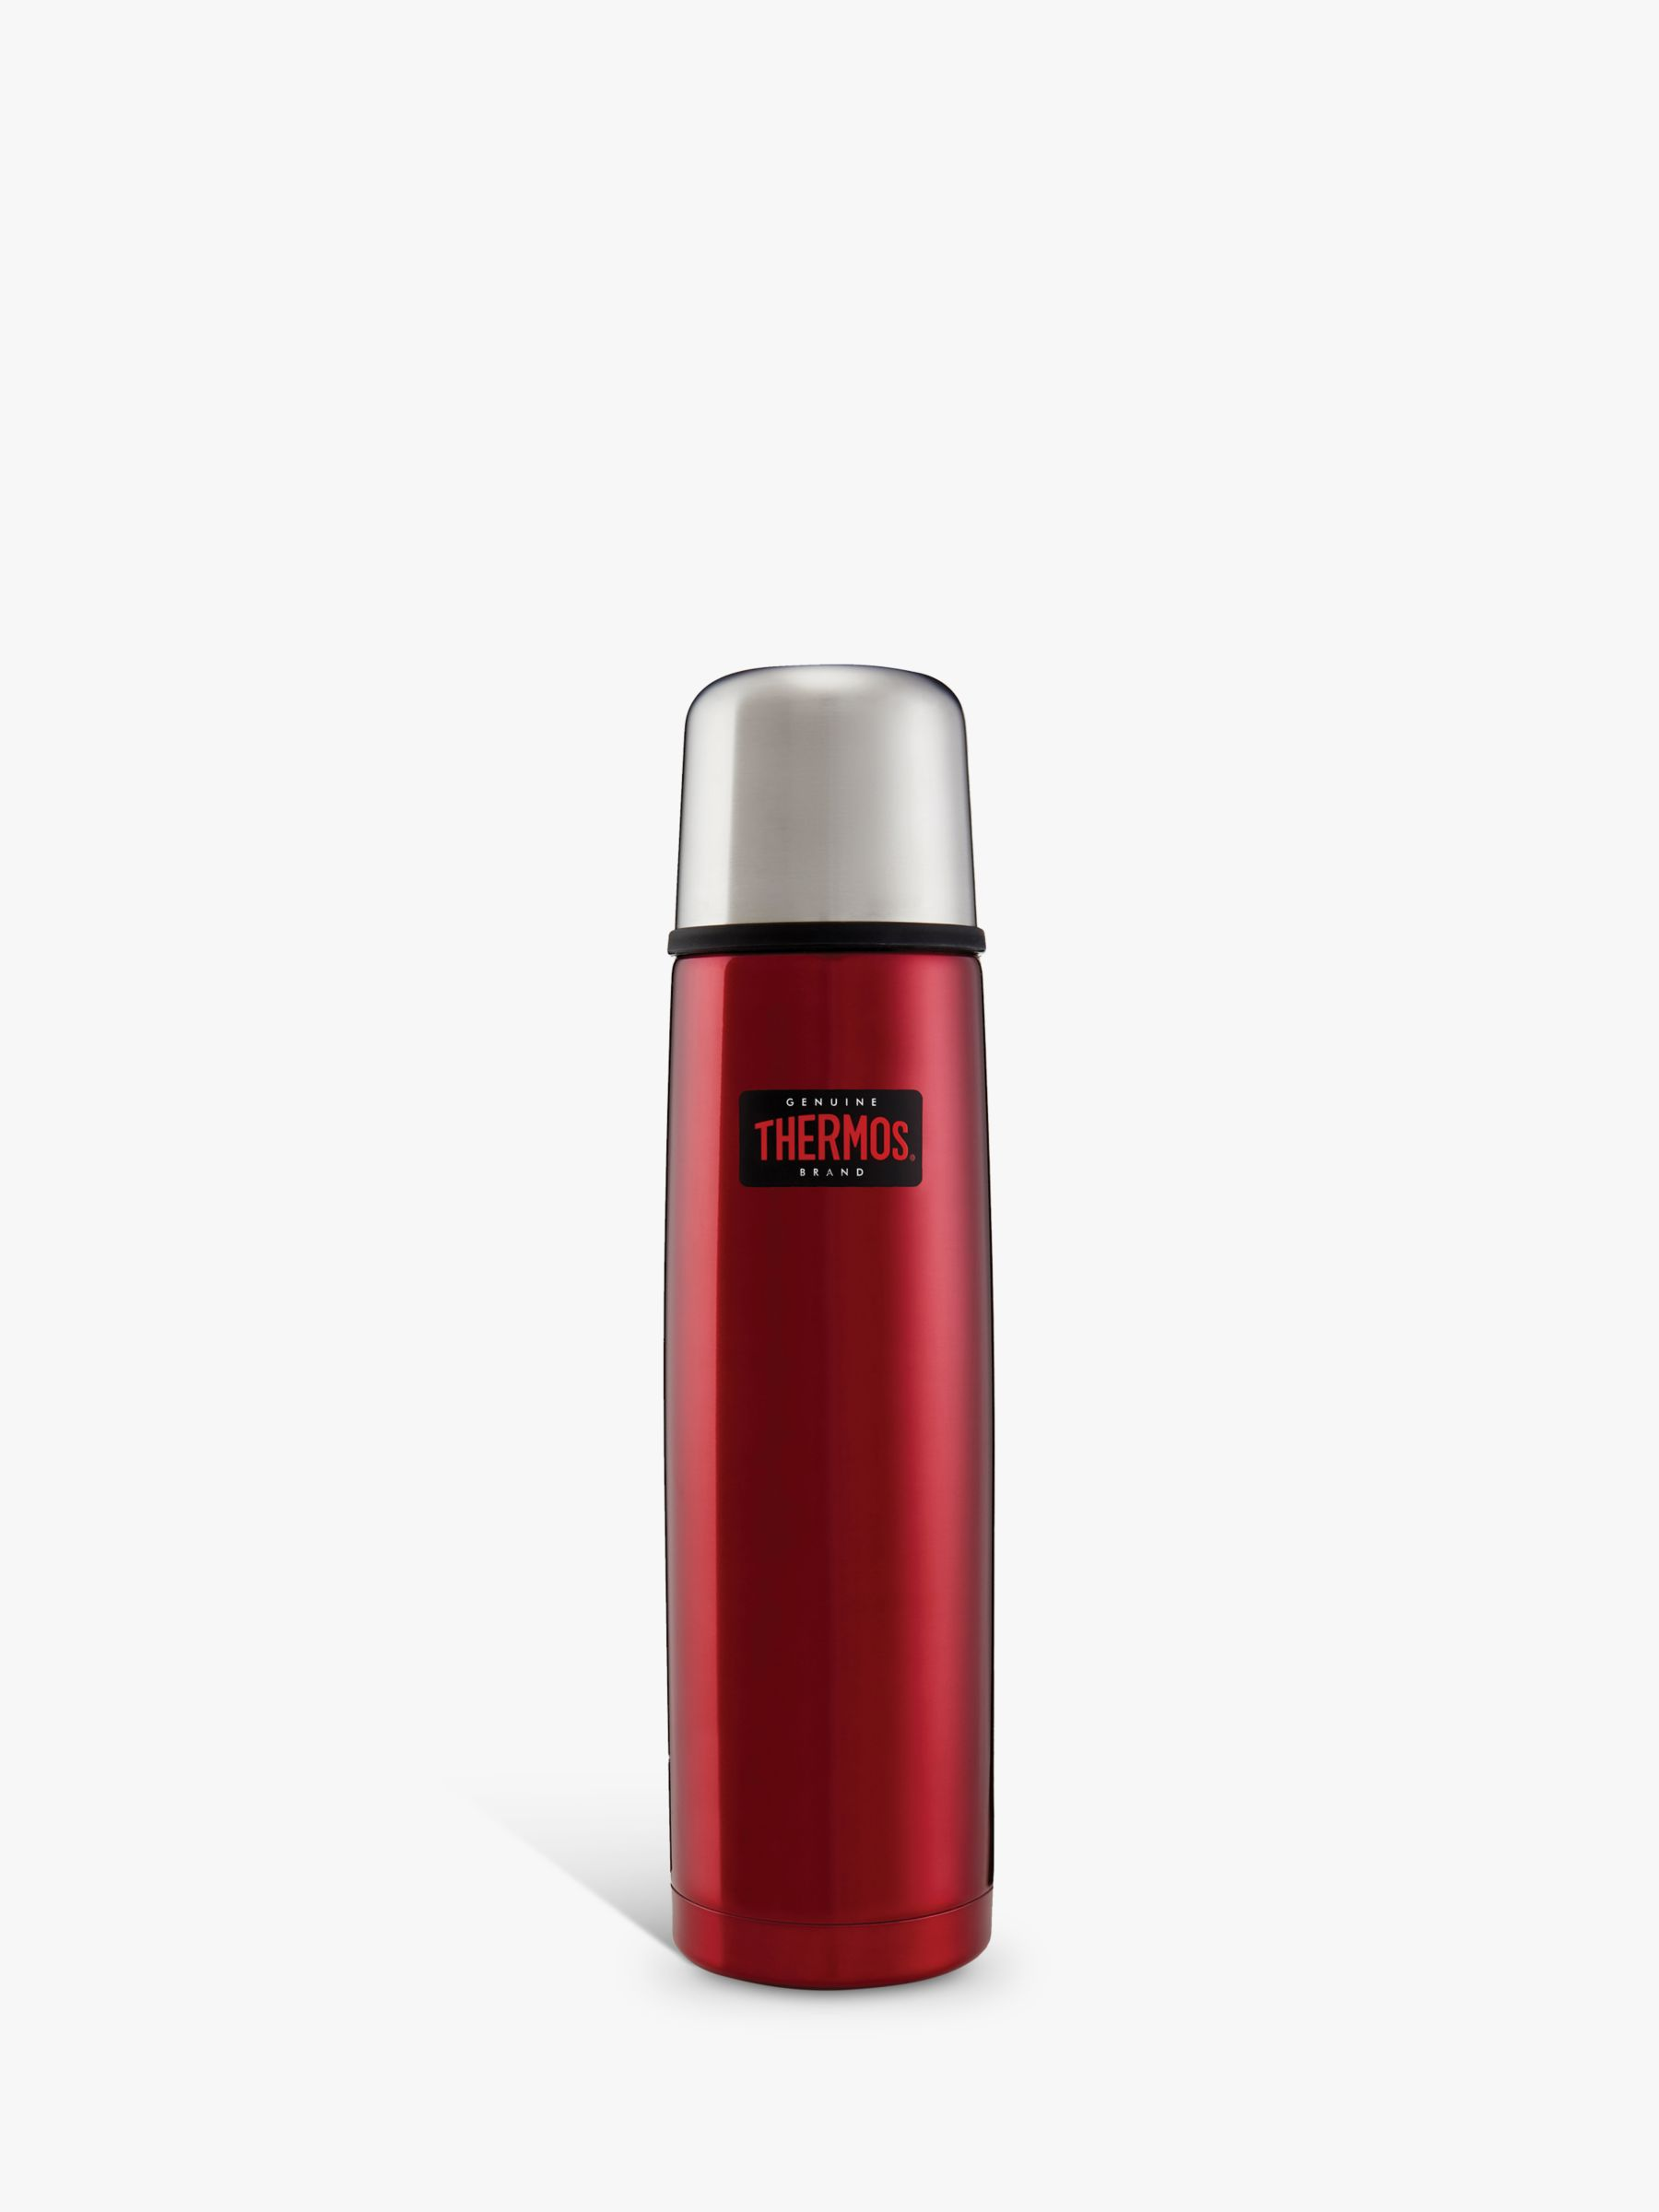 Thermos Thermos Light & Compact Stainless Steel Flask, 1L, Red